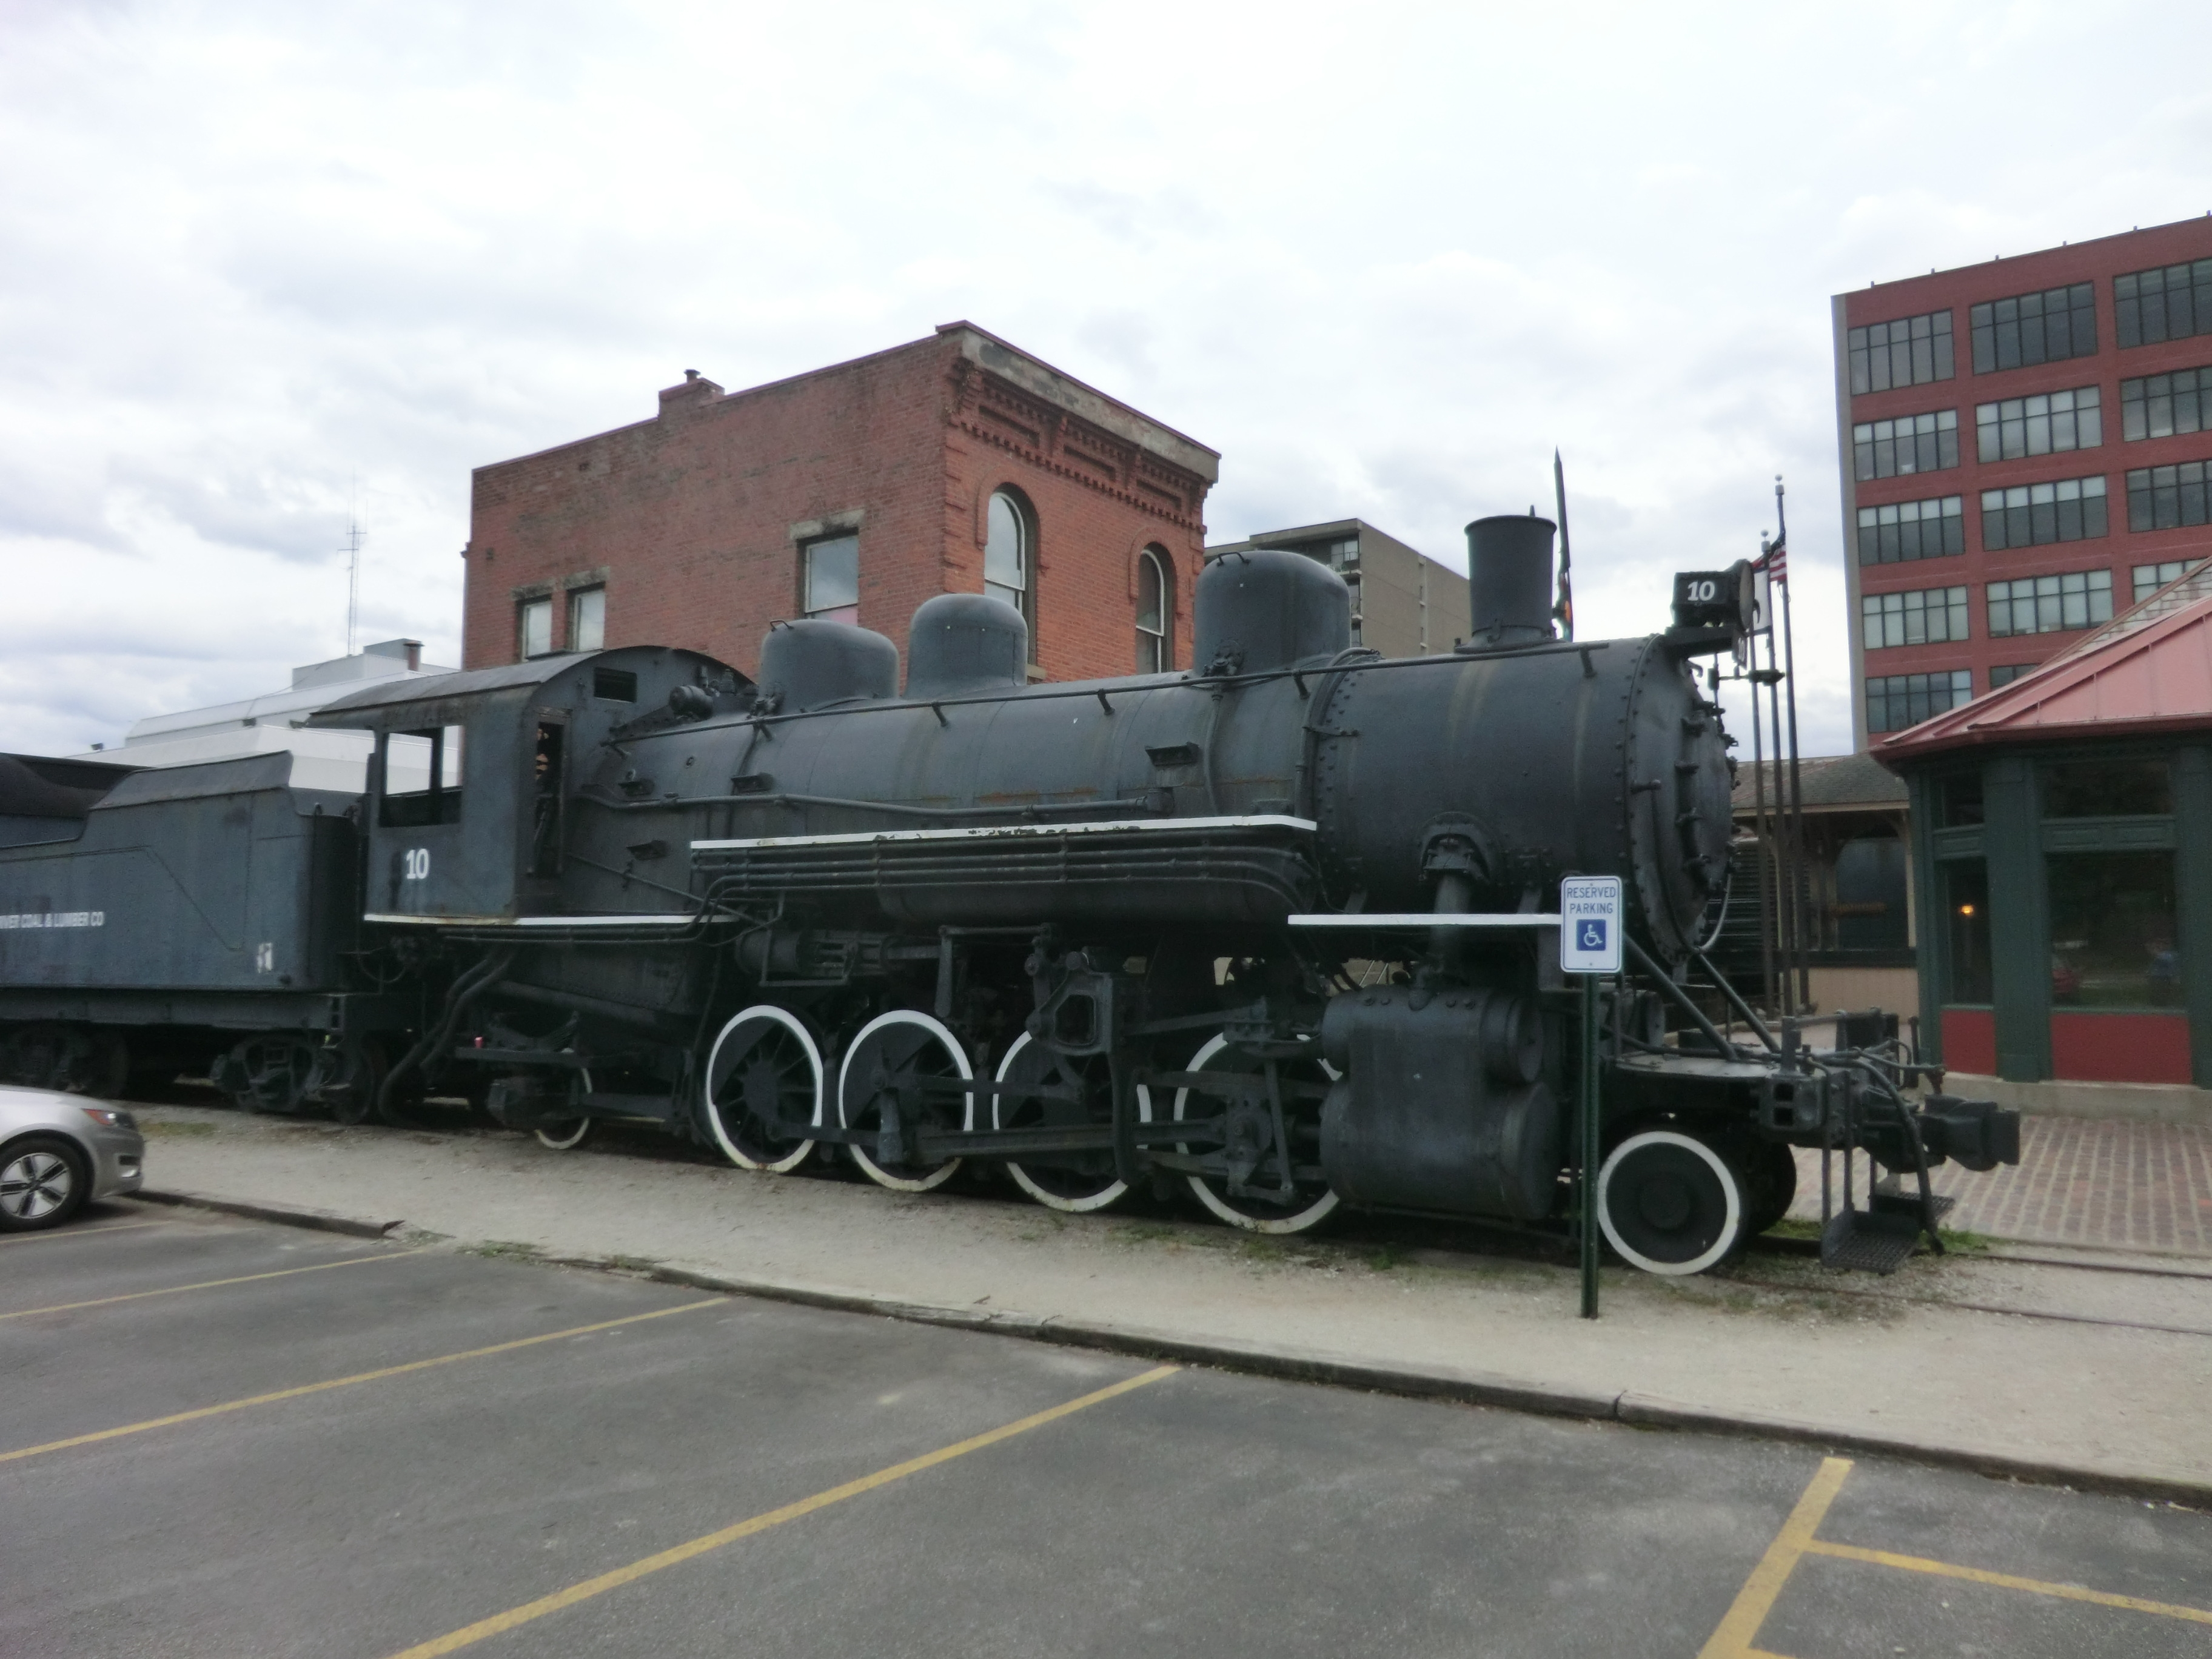 B&O Locomotive #10